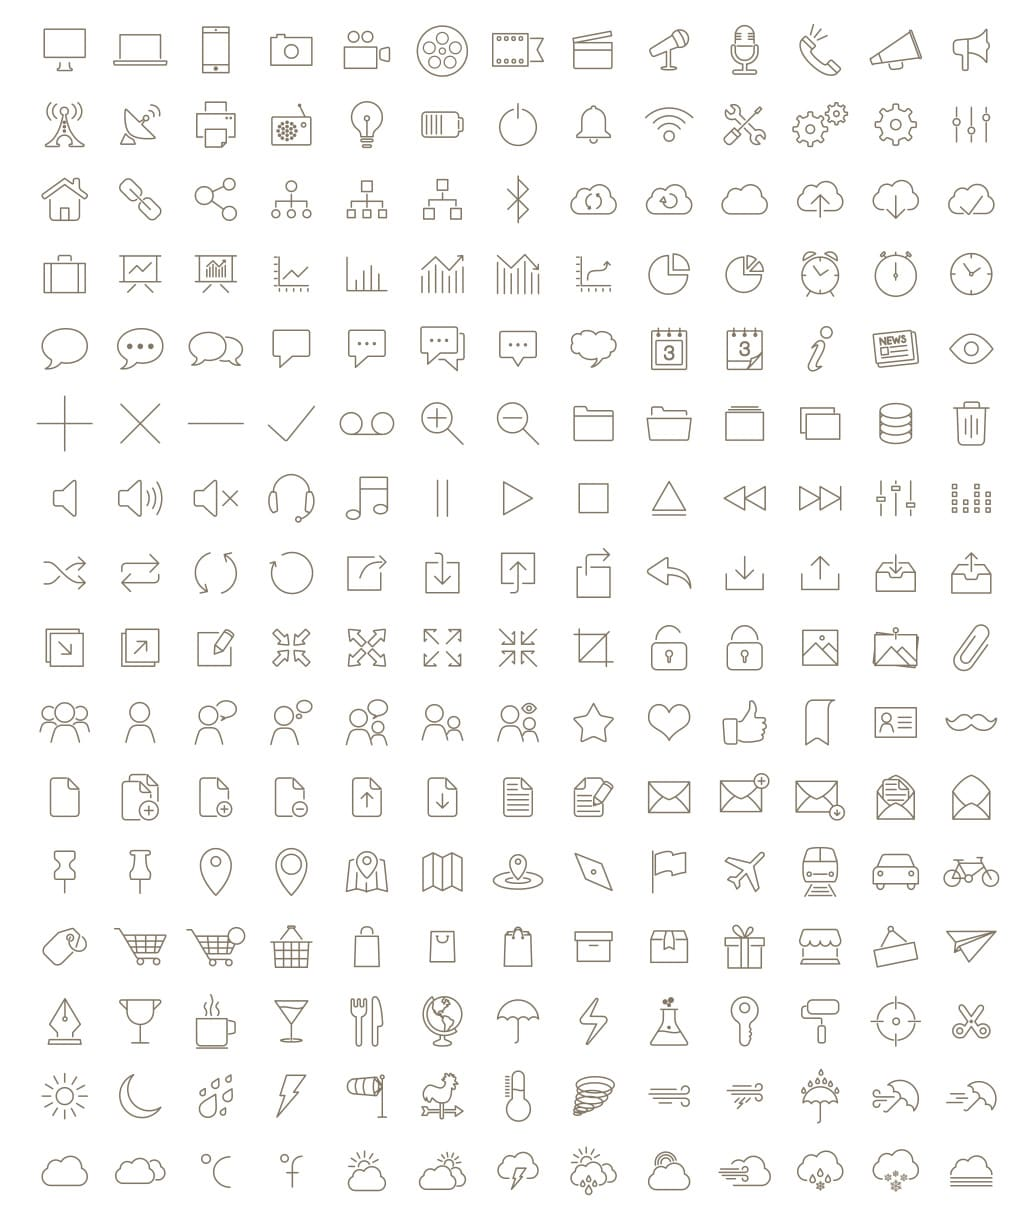 Best free line icon fonts css author outline icon free font biocorpaavc Choice Image